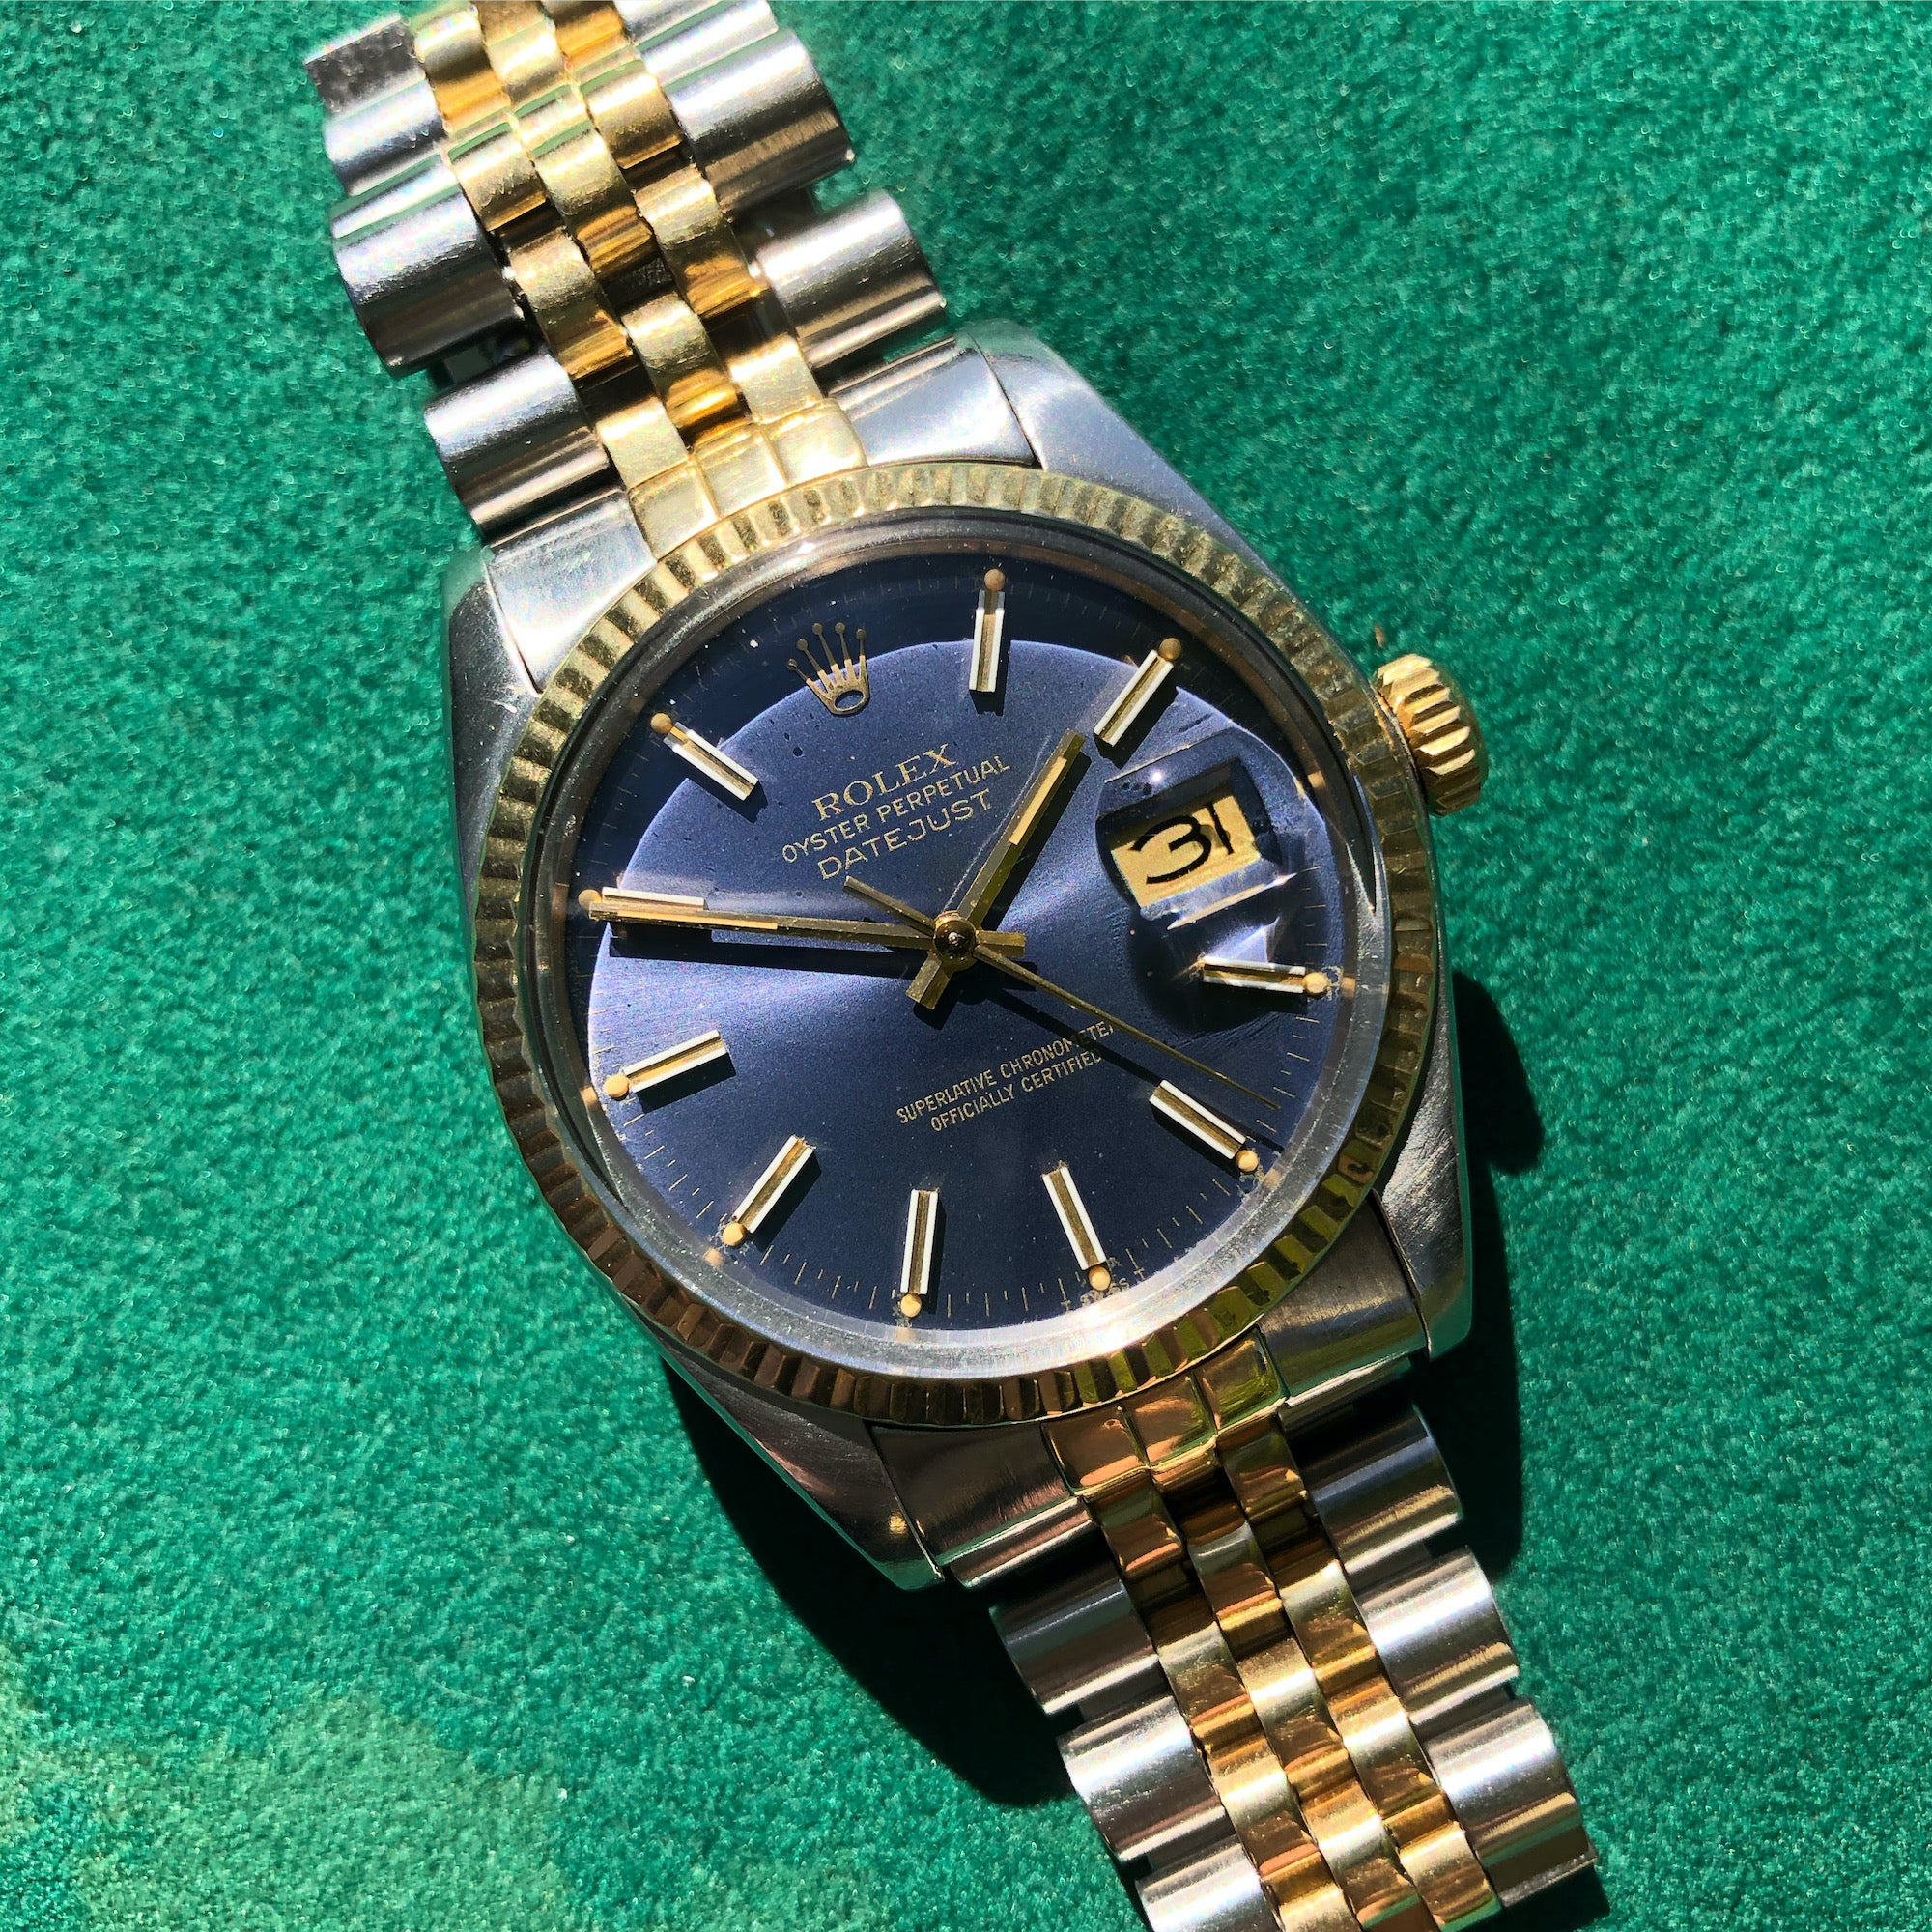 Vintage Rolex Datejust 16013 Steel Gold Two Tone Jubilee Tropical Automatic Wristwatch Circa 1980 - Hashtag Watch Company